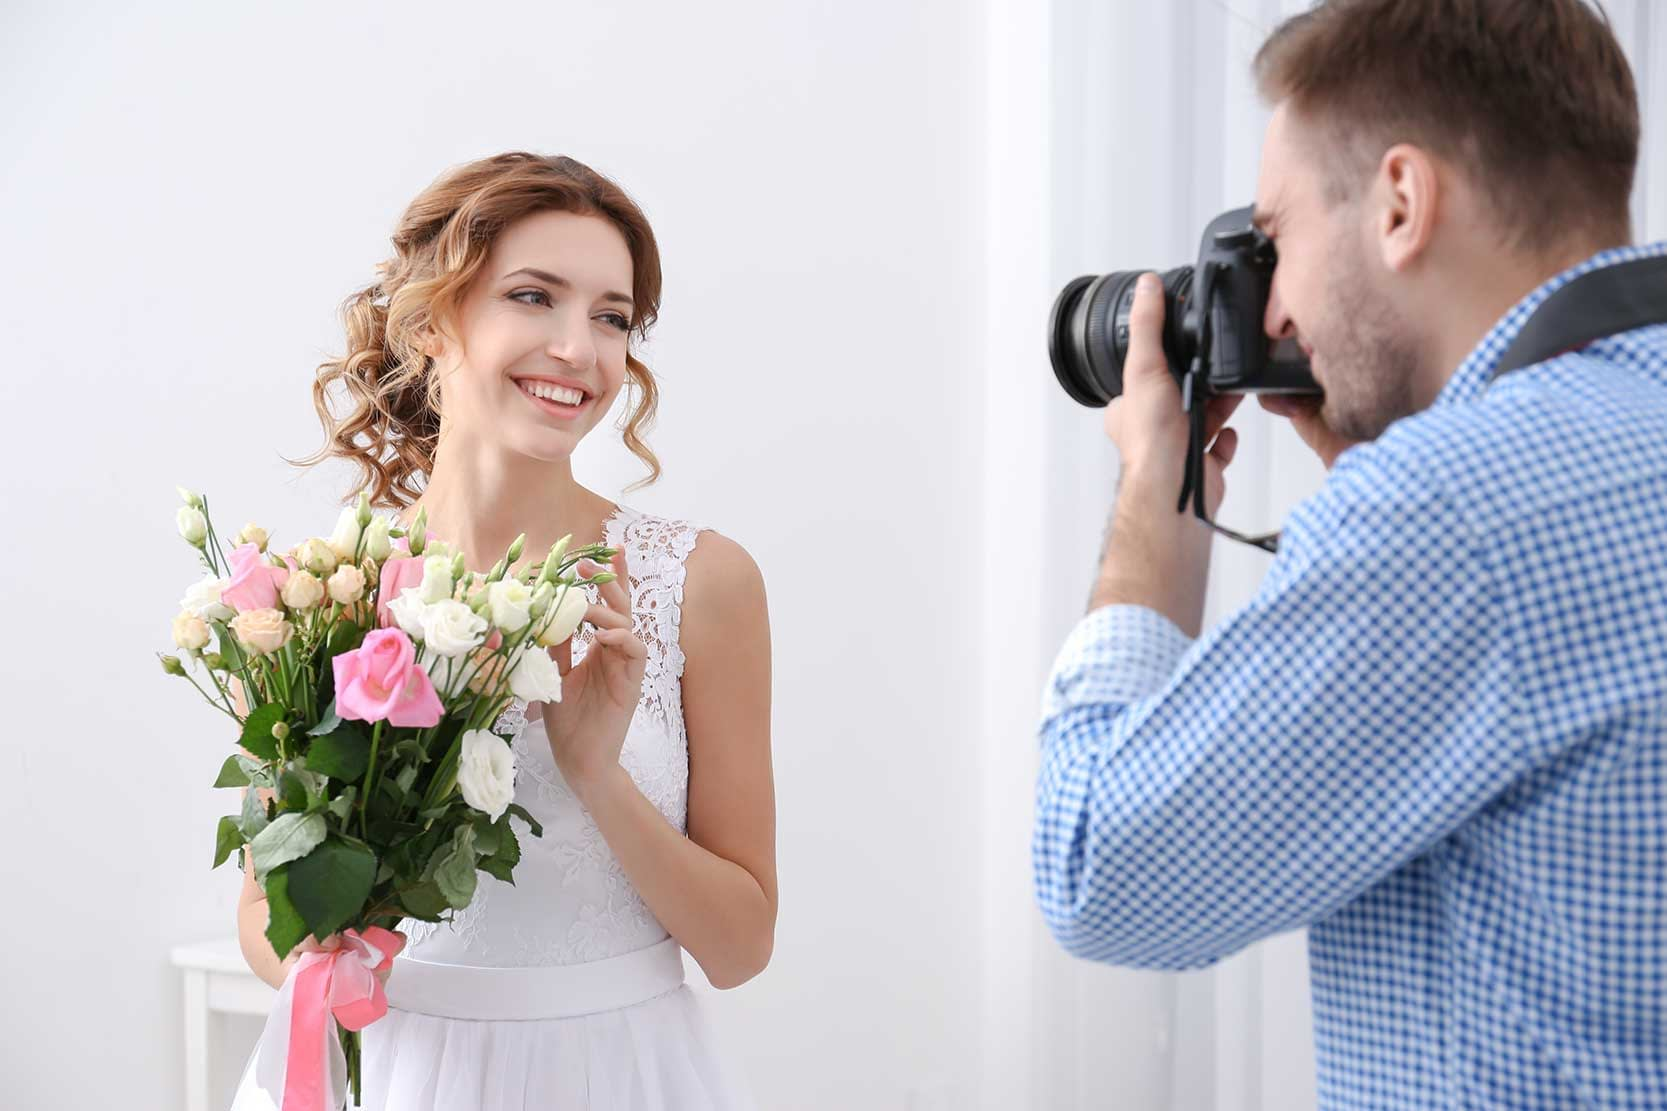 A wedding photographer taking a photo of a bride